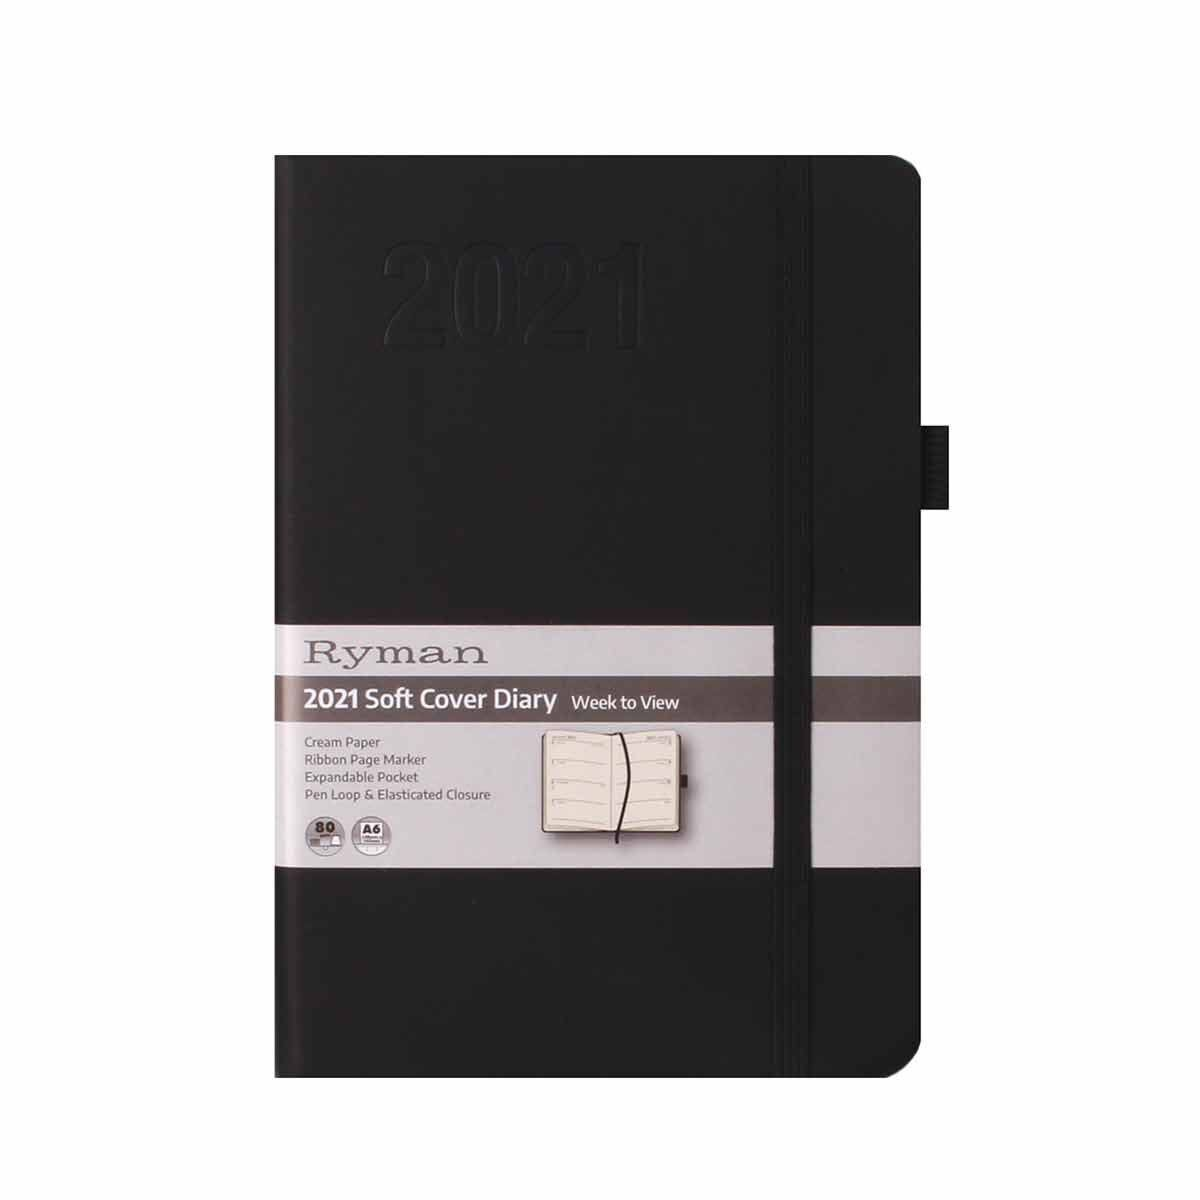 Ryman Soft Touch Diary Week to View A6 2021 Black